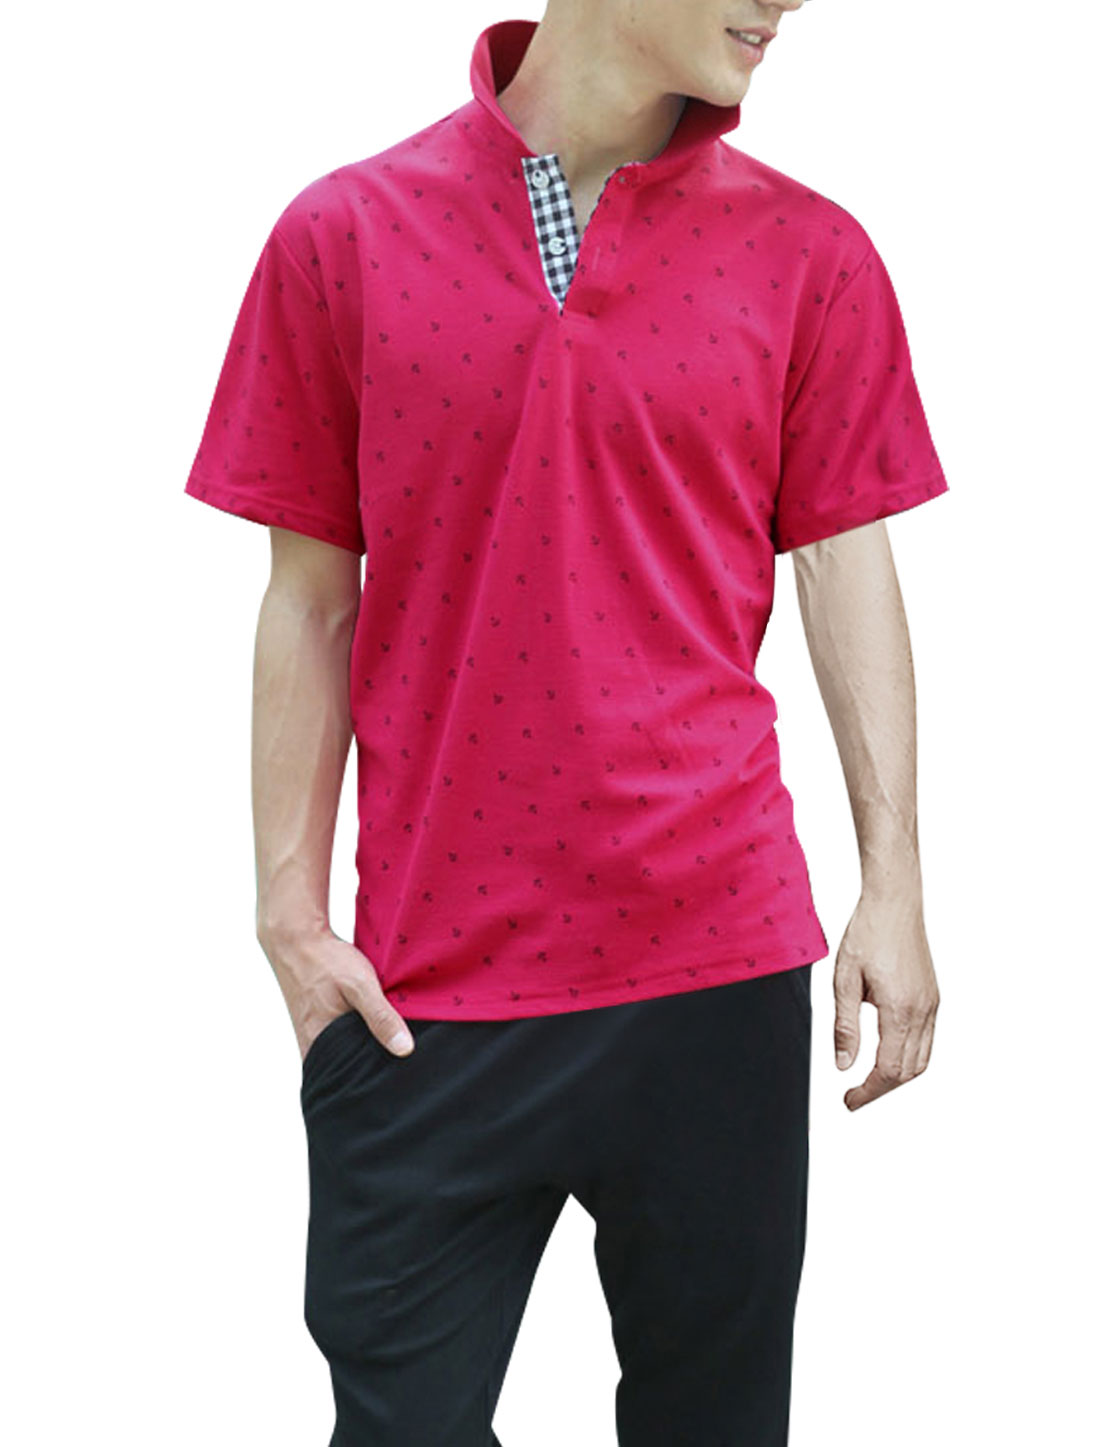 Men Convertible Collar Plaids Decor Inside Shirt Fuchsia L